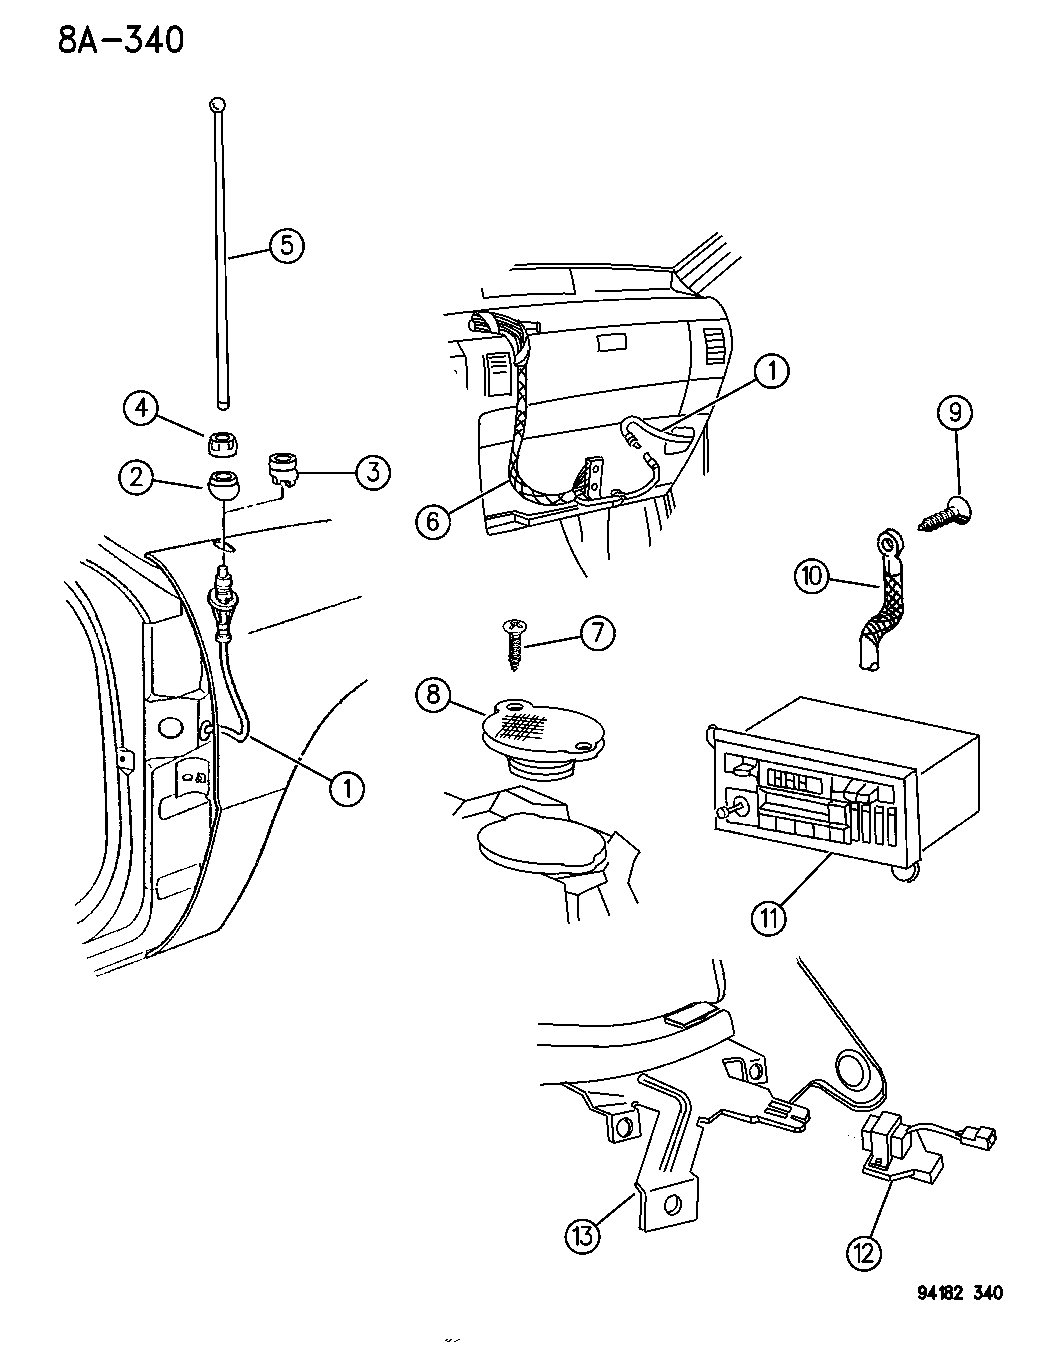 1994 Chrysler Town Country Radio Speaker Antenna Wiring Diagram